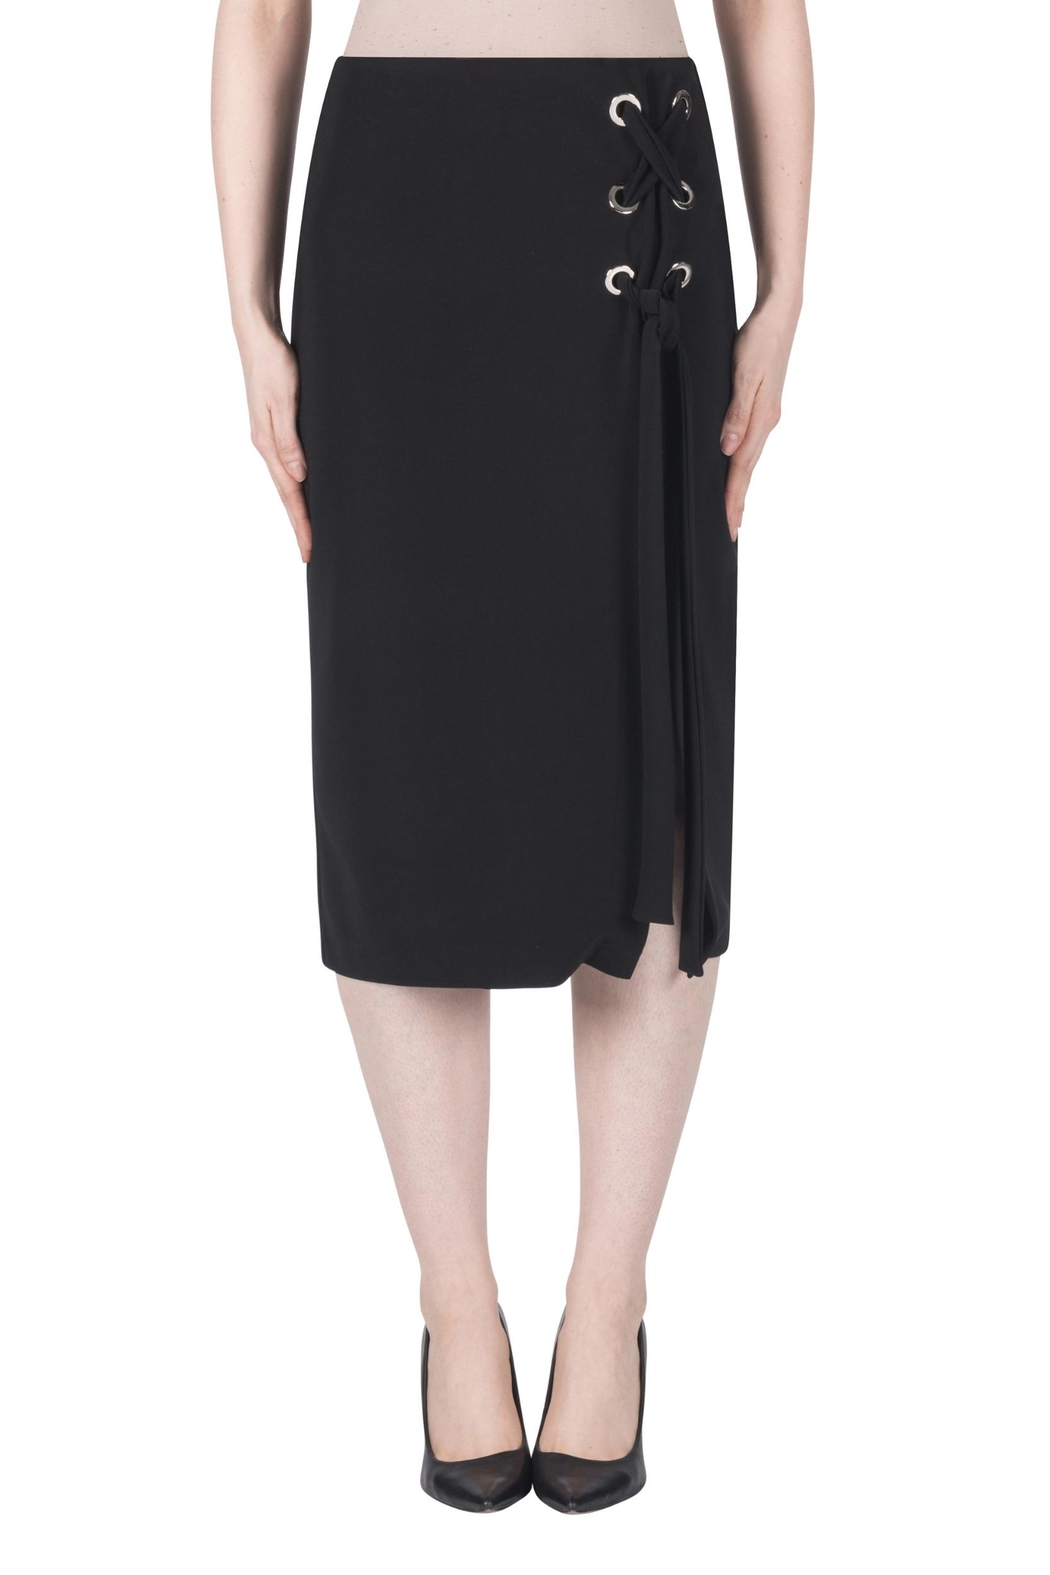 Joseph Ribkoff Timeless Pencil Skirt - Front Cropped Image